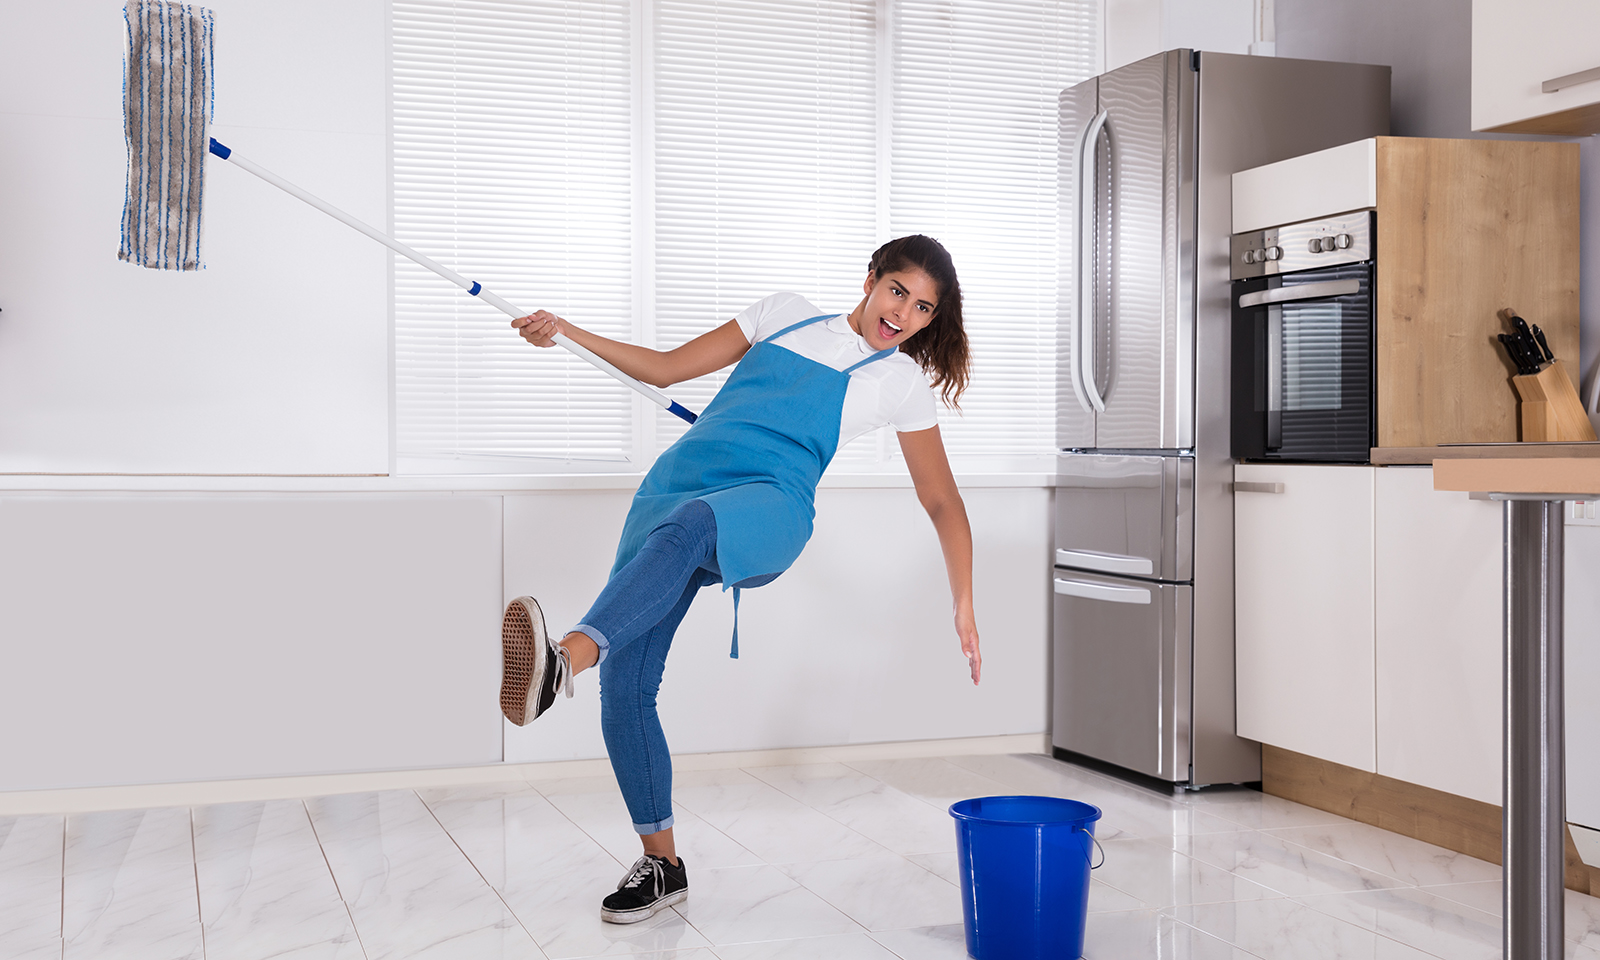 what-to-do-for-a-hygenic-home-main-image-woman-cleaning-house